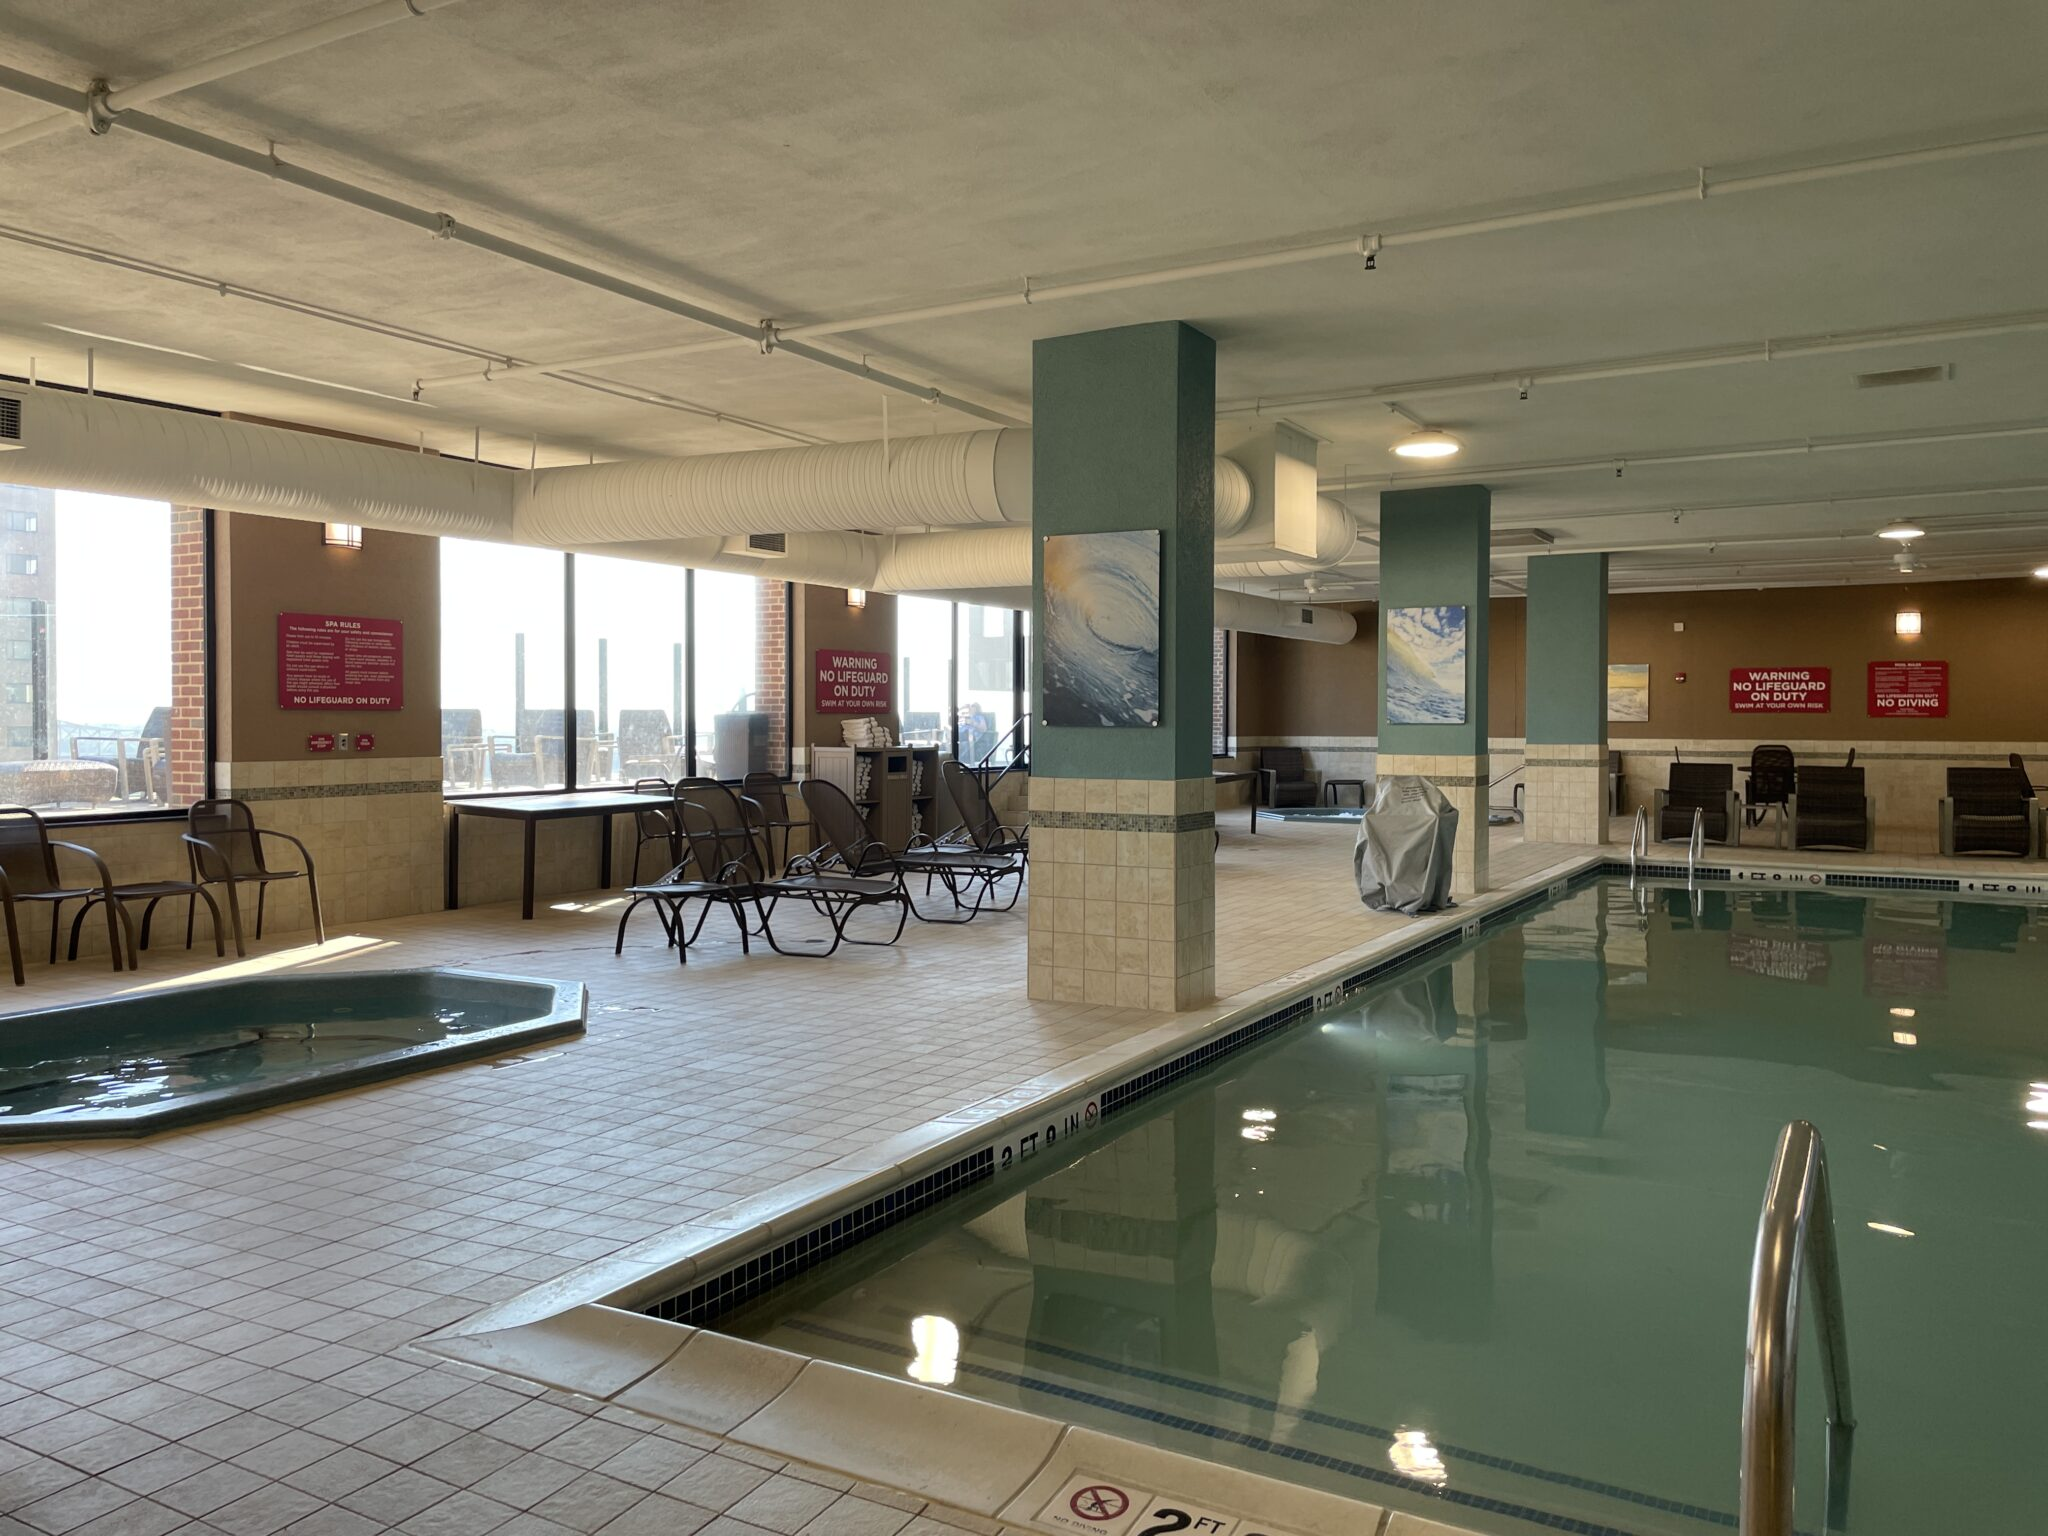 Traveling to St. Louis by popular Chicago travel blogger, Glass of Glam: image of an indoor swimming pool and hot tub.